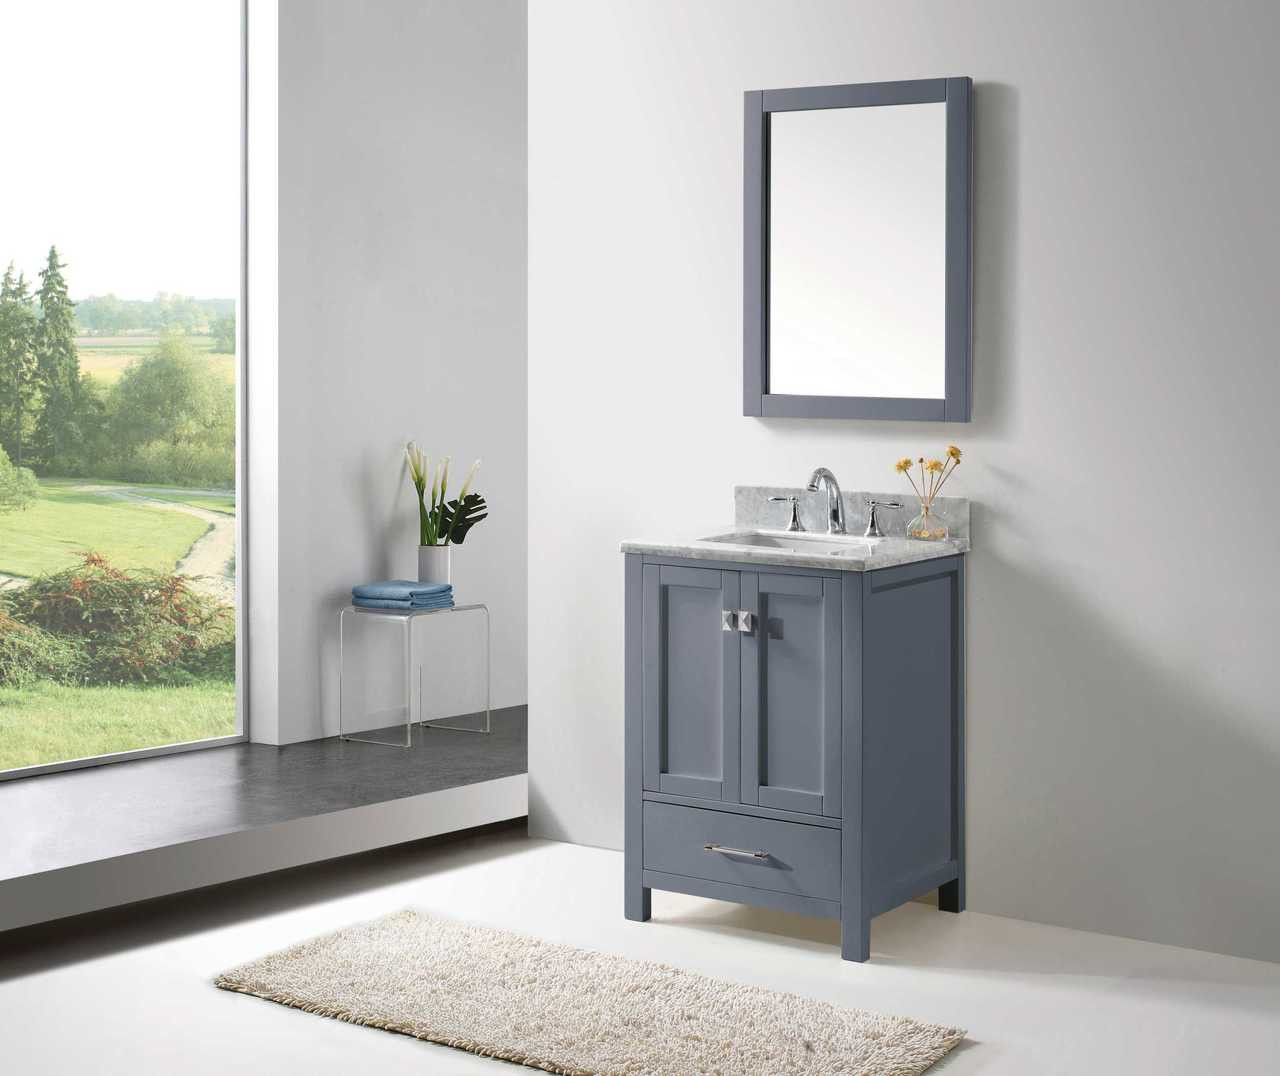 "Virtu USA Caroline Avenue 24"" Single Bathroom Vanity Cabinet Set in Grey w/ Italian Carrara White Marble Counter-Top 